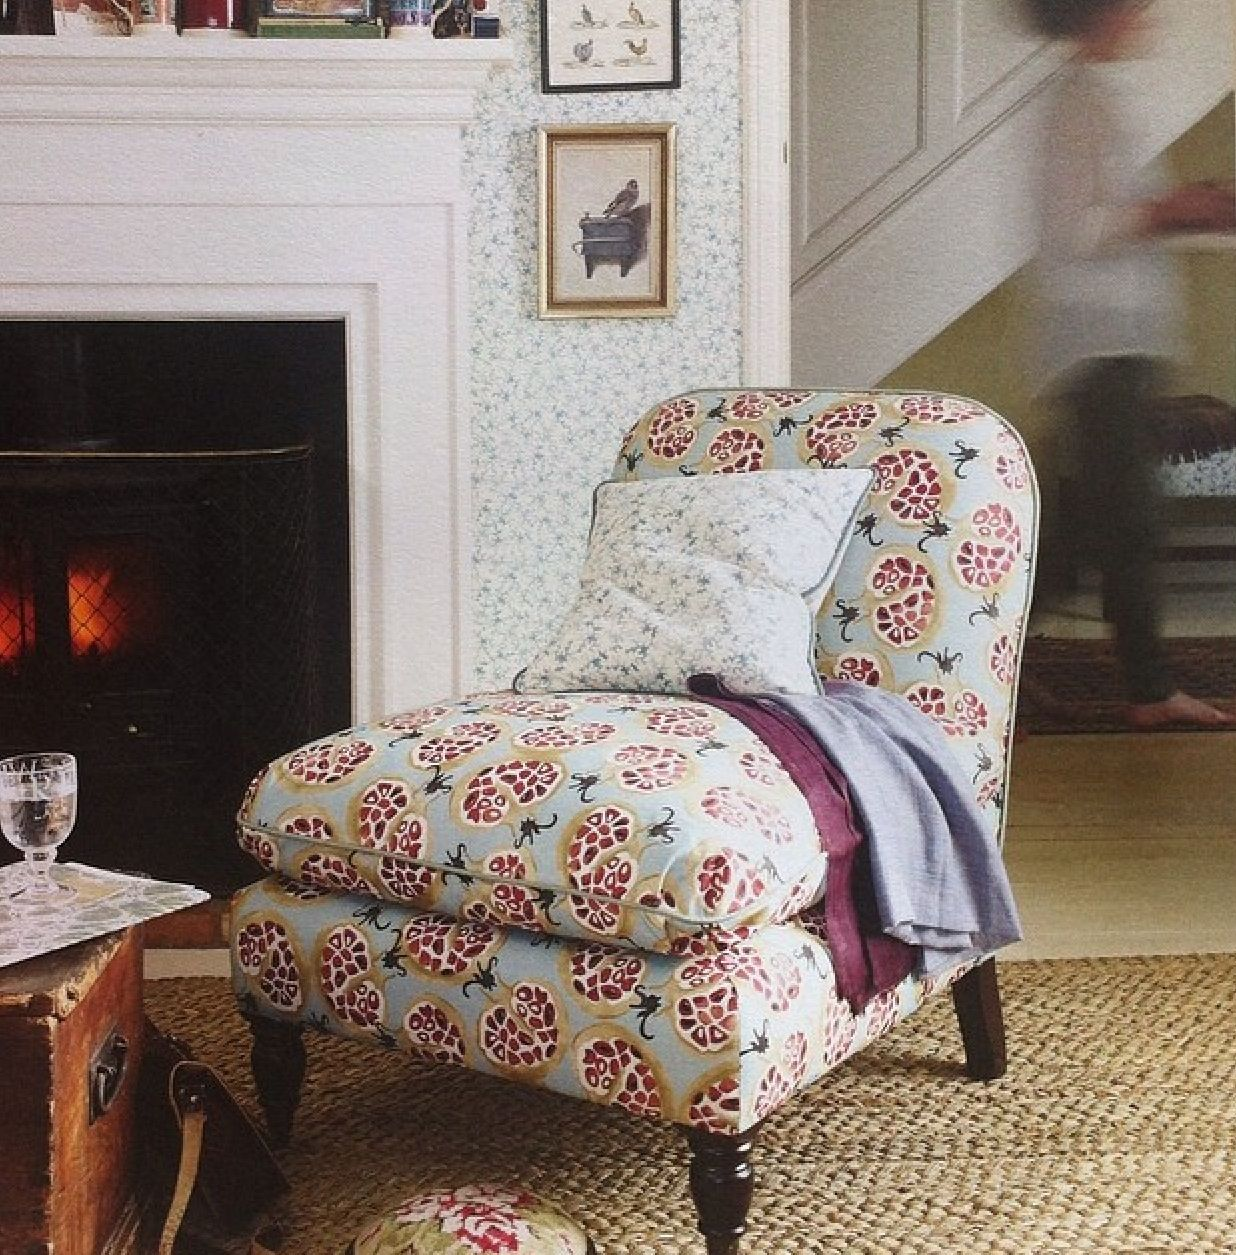 Furniture Stores Santa Maria Emma Bridgewater Fabrics In Collaboration With Sanderson